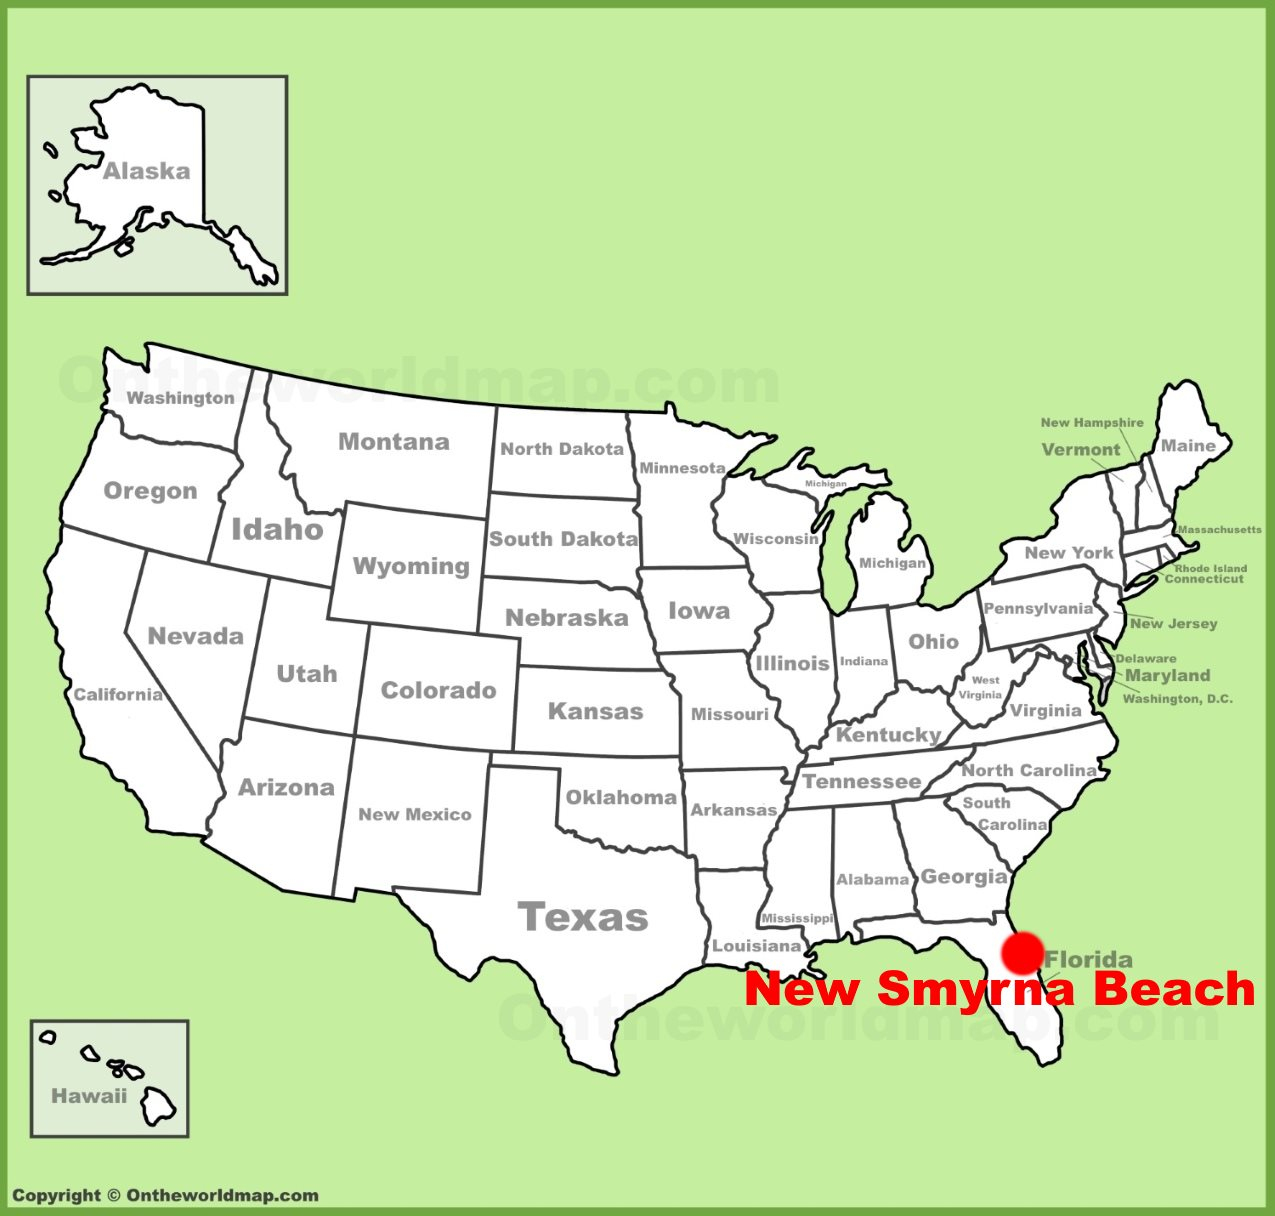 New Smyrna Beach Location On The U.s. Map - New Smyrna Beach Florida Map